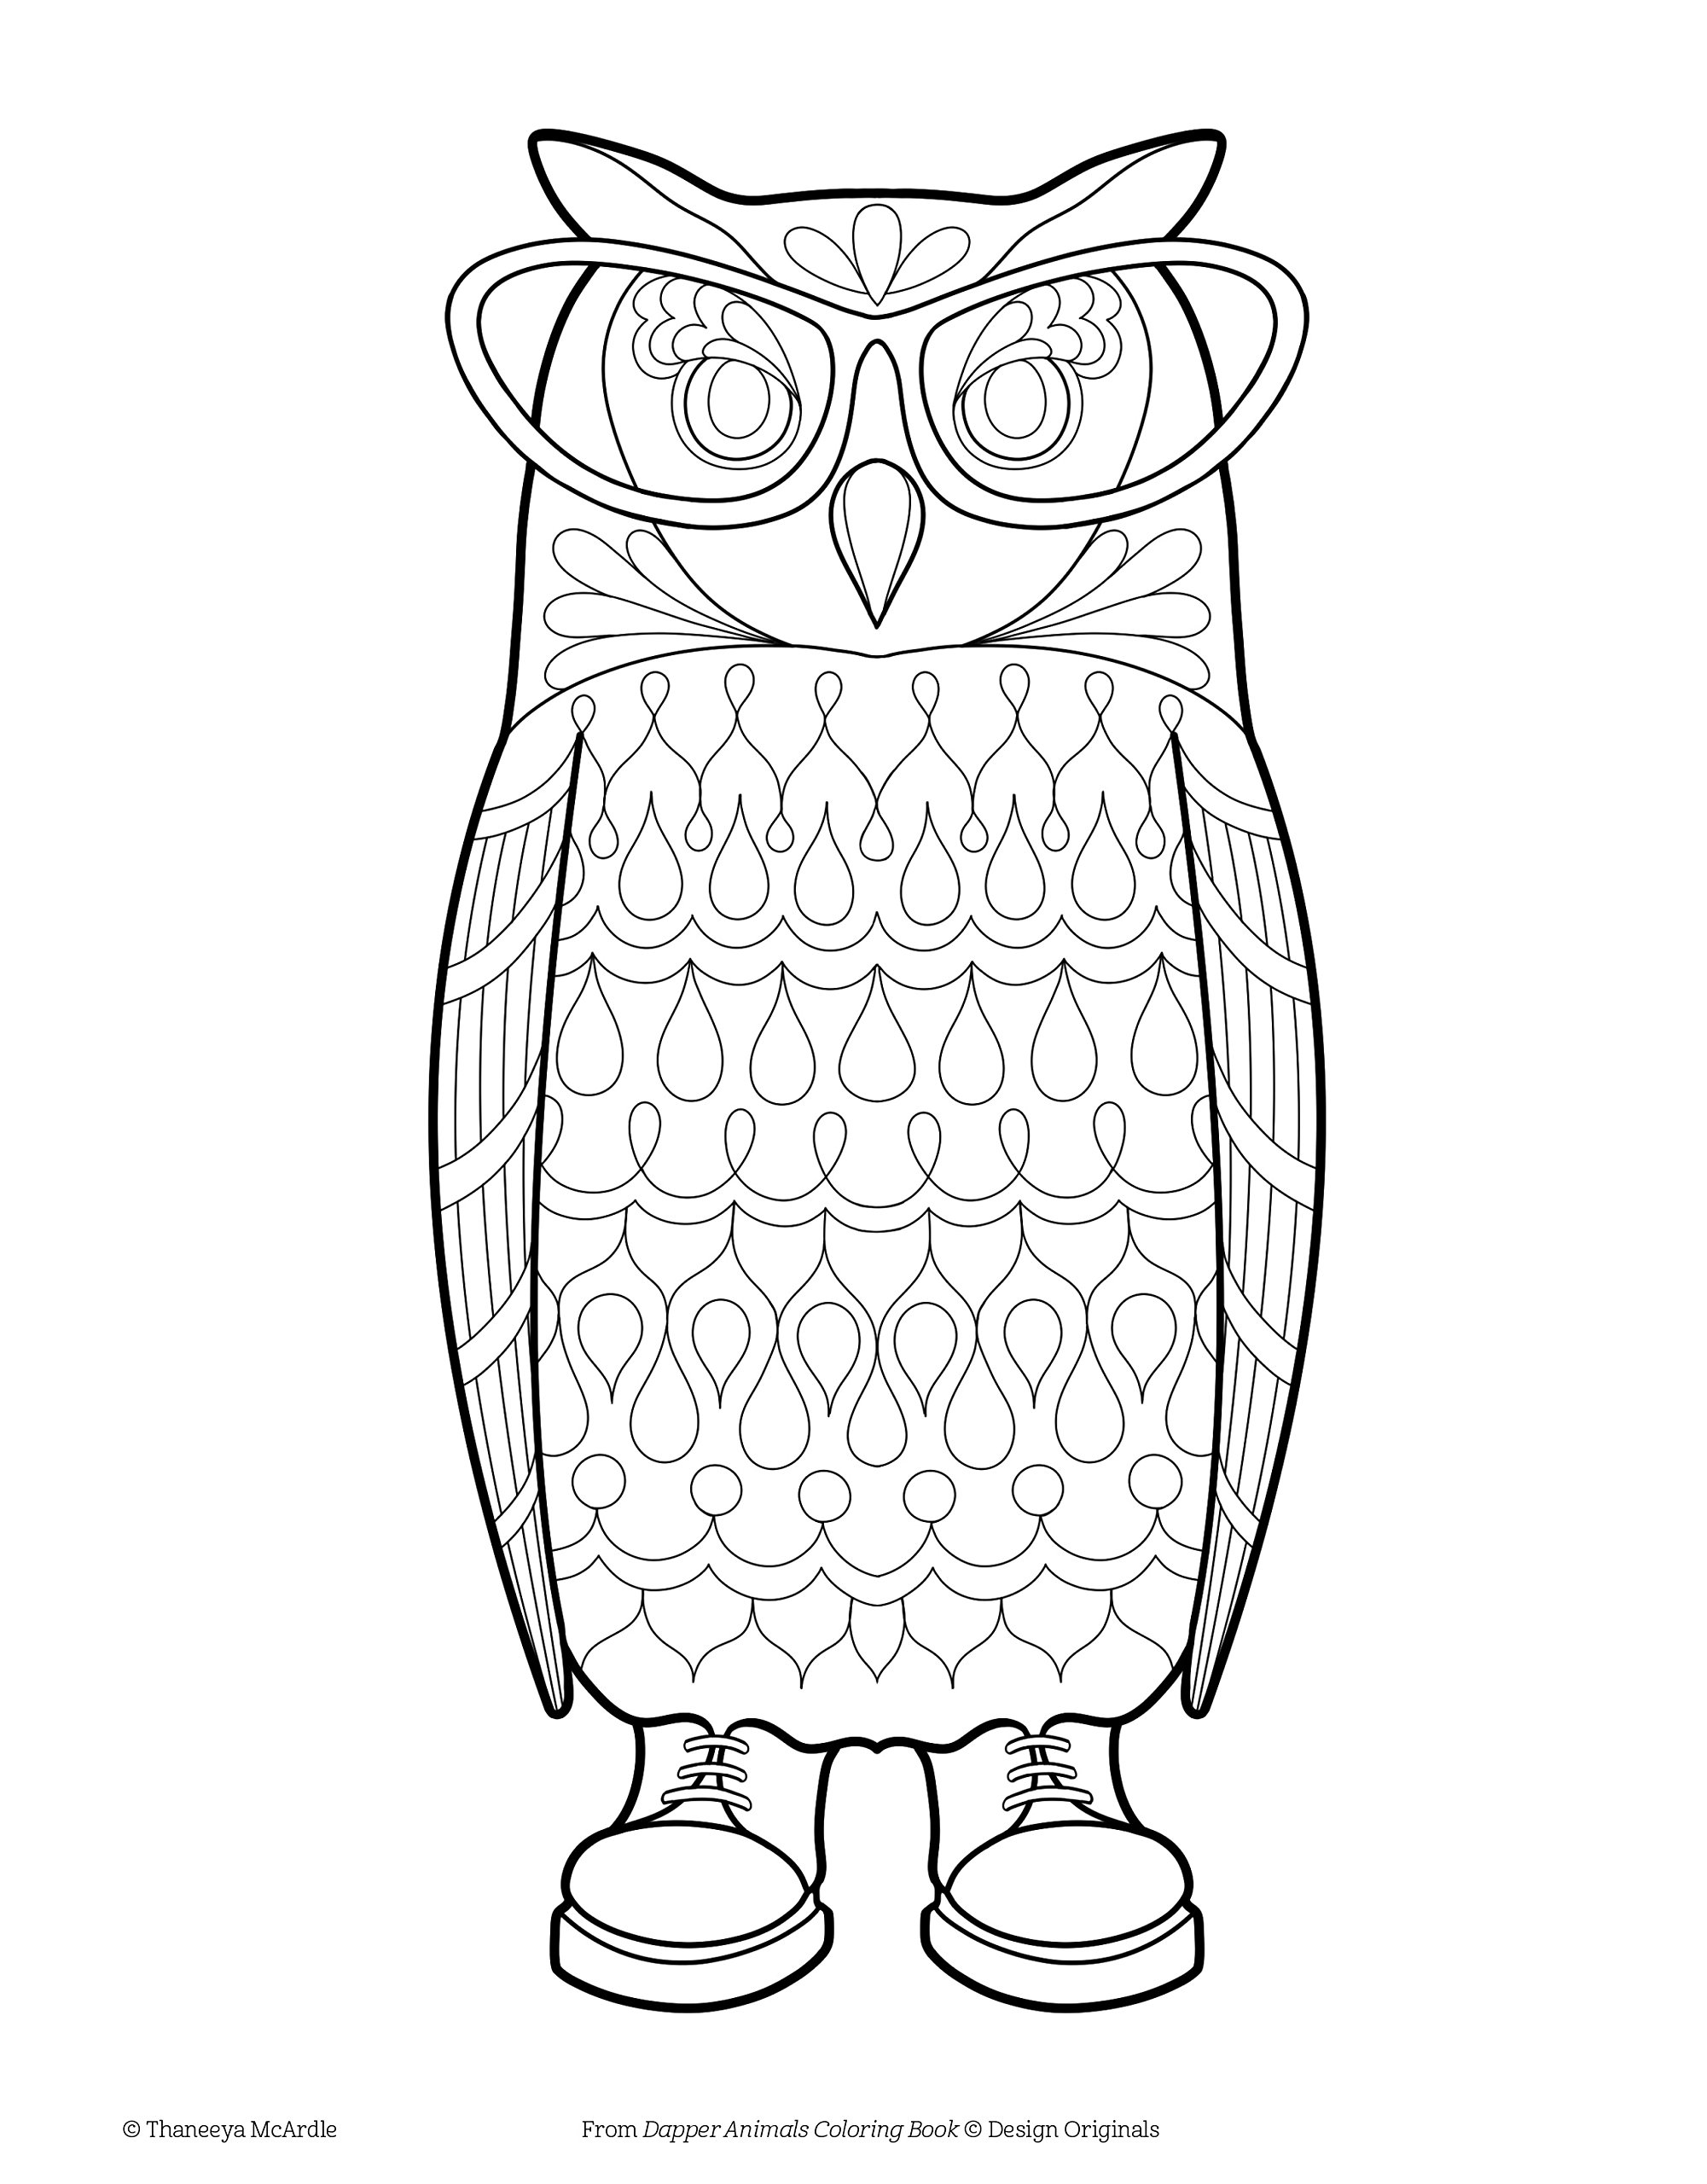 Amazon.com: Dapper Animals Coloring Book (Coloring is Fun) (Design ...